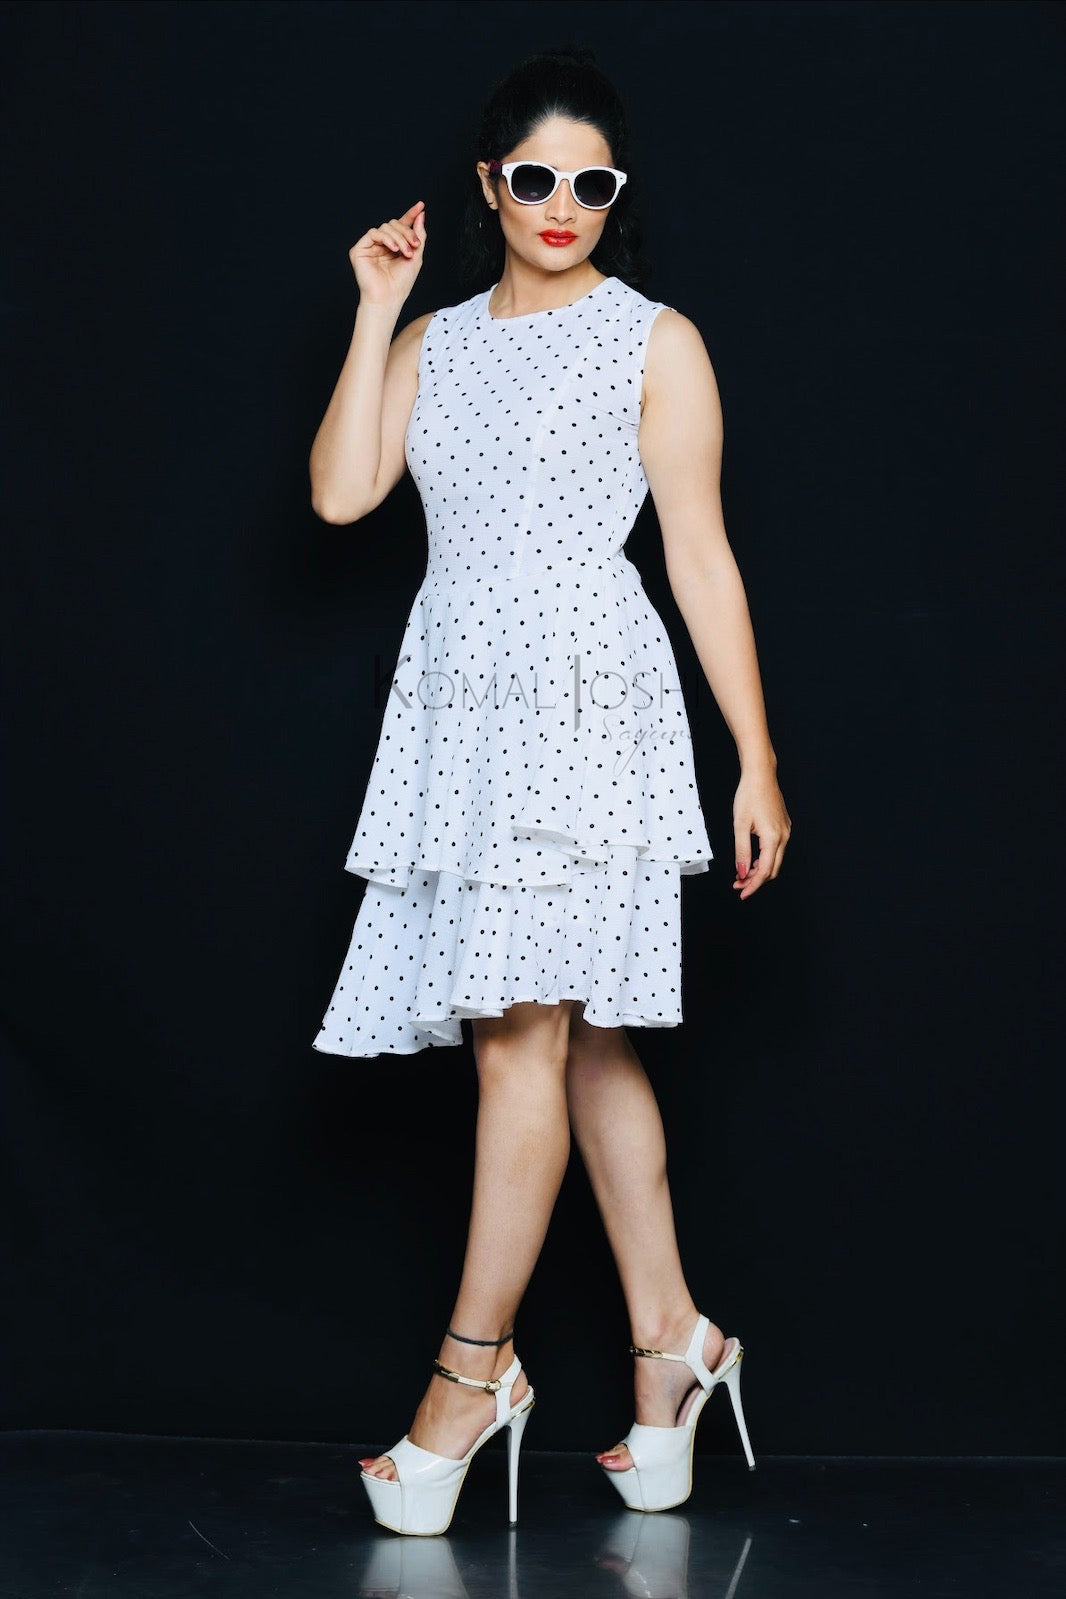 White Georgette With Black Polka Dot Tiered Dress By Sayuri.